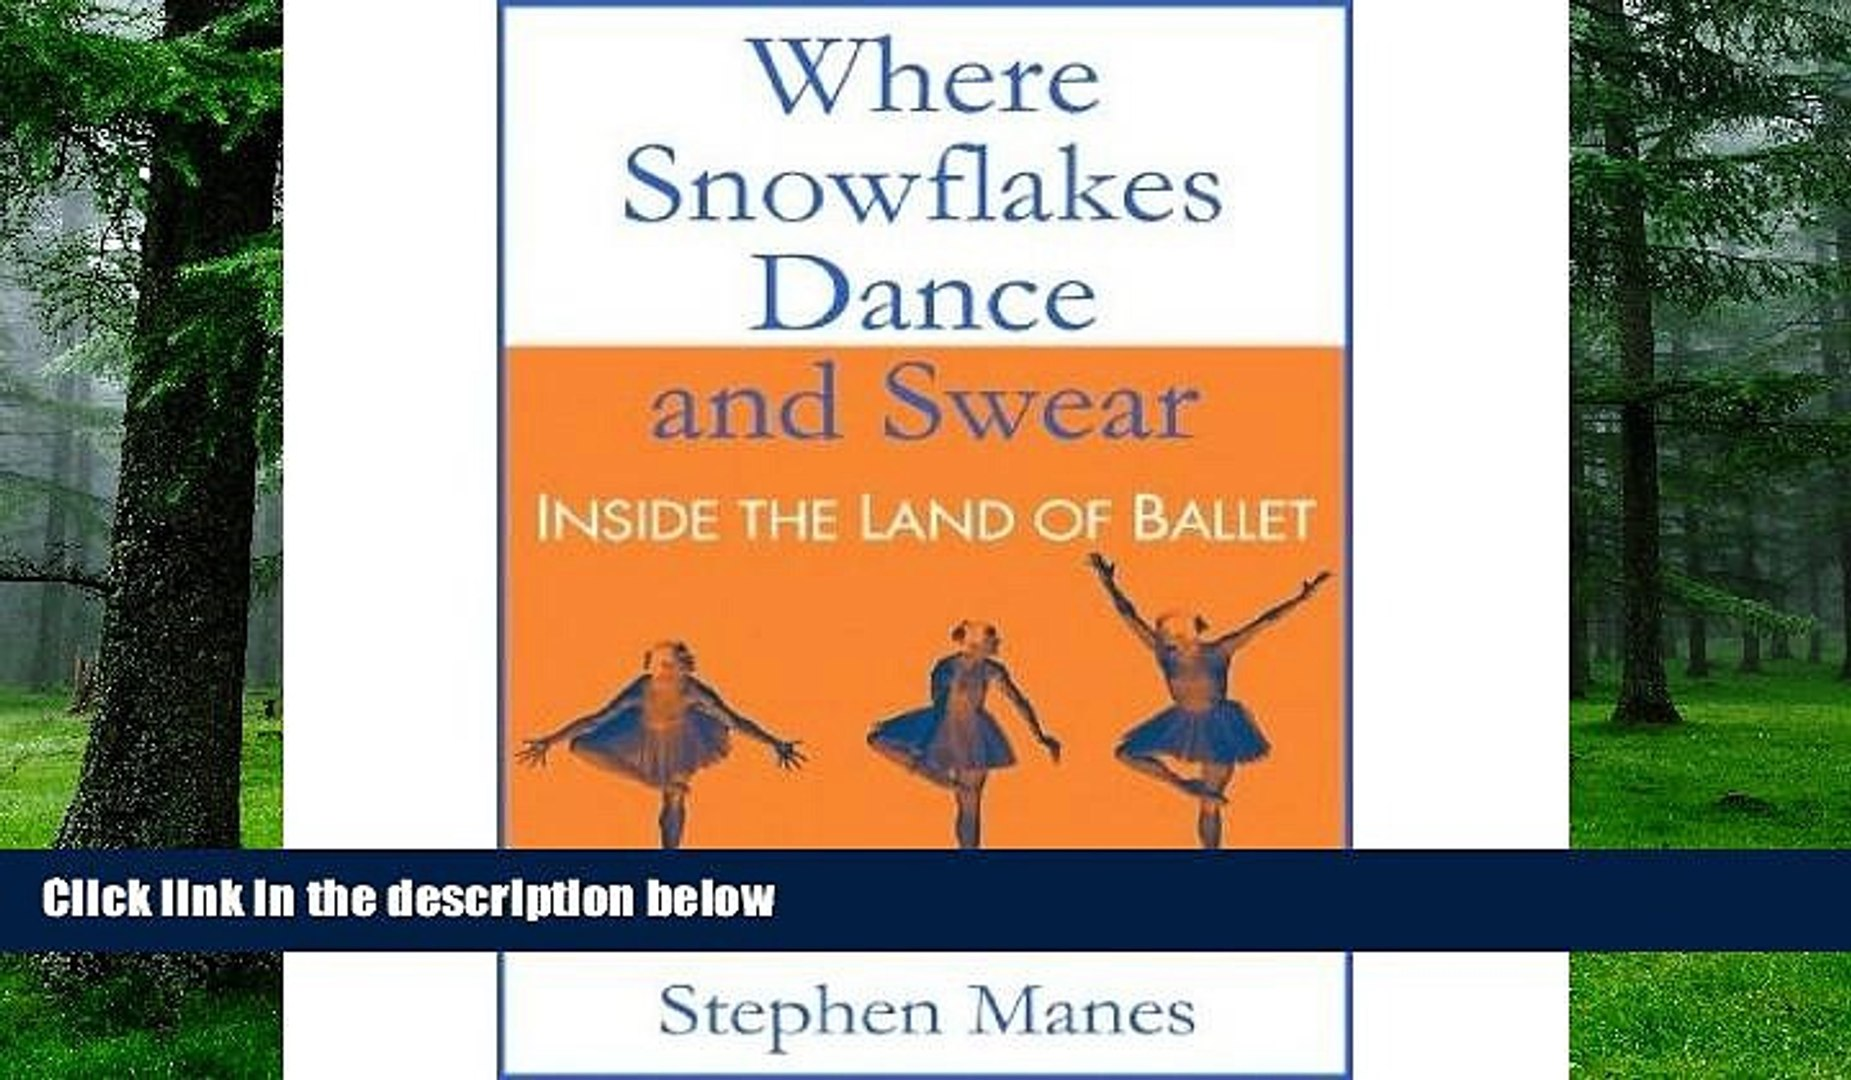 Where Snowflakes Dance and Swear Inside the Land of Ballet